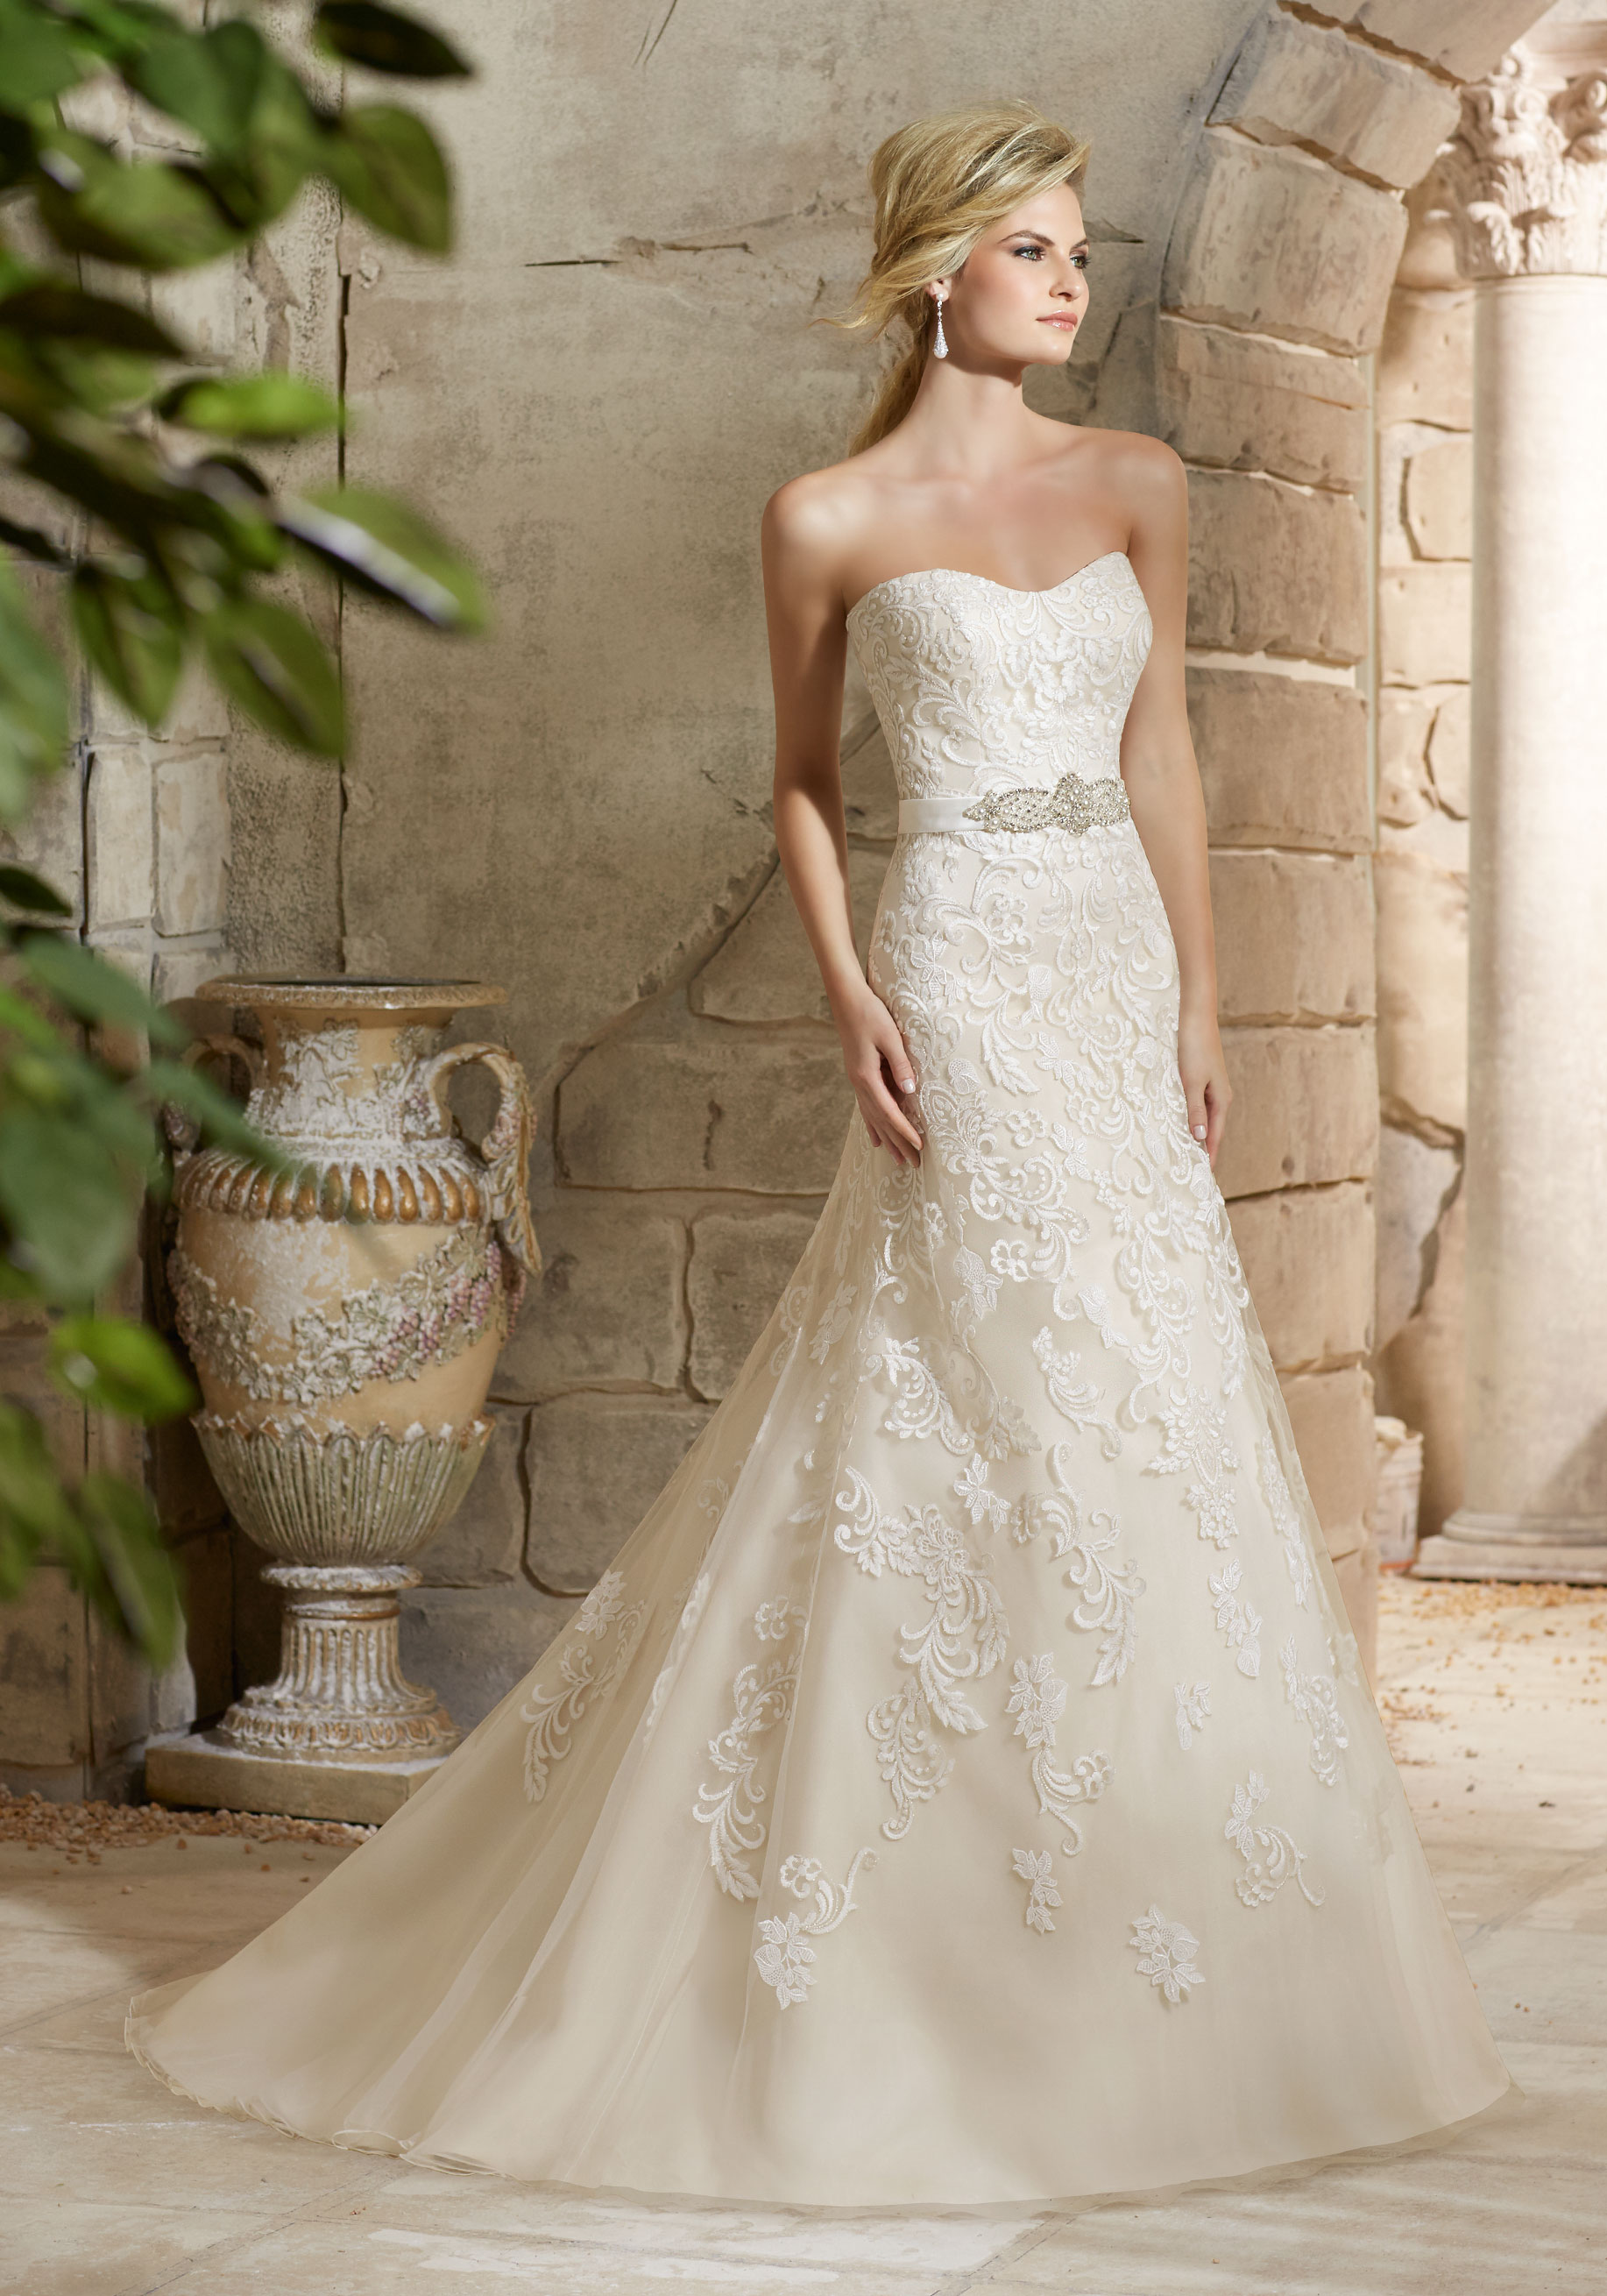 Mori Lee - Bridal Gown